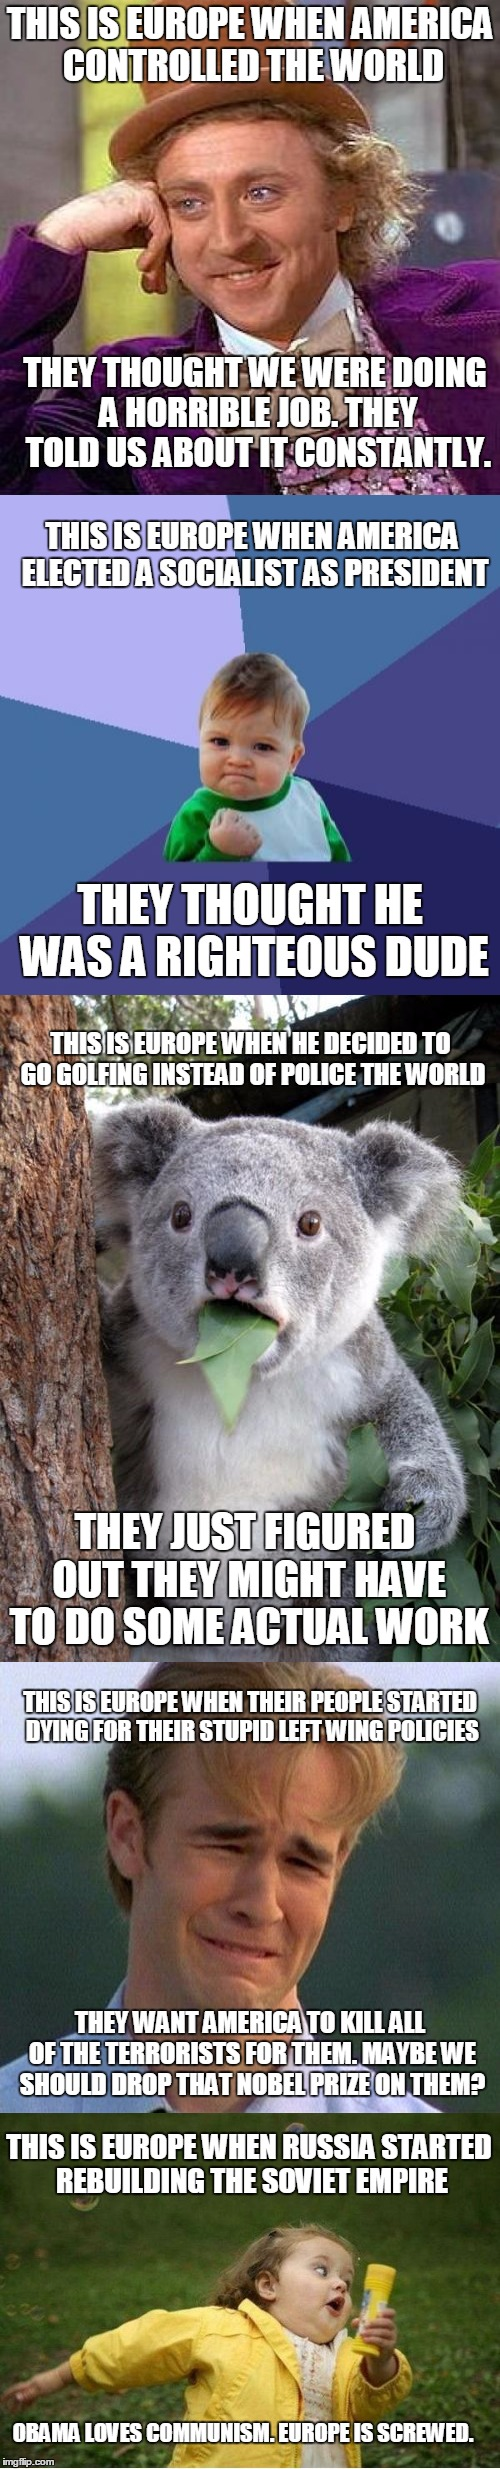 This is Europe.  |  THIS IS EUROPE WHEN AMERICA CONTROLLED THE WORLD; THEY THOUGHT WE WERE DOING A HORRIBLE JOB. THEY TOLD US ABOUT IT CONSTANTLY. THIS IS EUROPE WHEN AMERICA ELECTED A SOCIALIST AS PRESIDENT; THEY THOUGHT HE WAS A RIGHTEOUS DUDE; THIS IS EUROPE WHEN HE DECIDED TO GO GOLFING INSTEAD OF POLICE THE WORLD; THEY JUST FIGURED OUT THEY MIGHT HAVE TO DO SOME ACTUAL WORK; THIS IS EUROPE WHEN THEIR PEOPLE STARTED DYING FOR THEIR STUPID LEFT WING POLICIES; THEY WANT AMERICA TO KILL ALL OF THE TERRORISTS FOR THEM. MAYBE WE SHOULD DROP THAT NOBEL PRIZE ON THEM? THIS IS EUROPE WHEN RUSSIA STARTED REBUILDING THE SOVIET EMPIRE; OBAMA LOVES COMMUNISM. EUROPE IS SCREWED. | image tagged in america,europe,scumbag europe,soviet russia,terrorism,arrogant | made w/ Imgflip meme maker